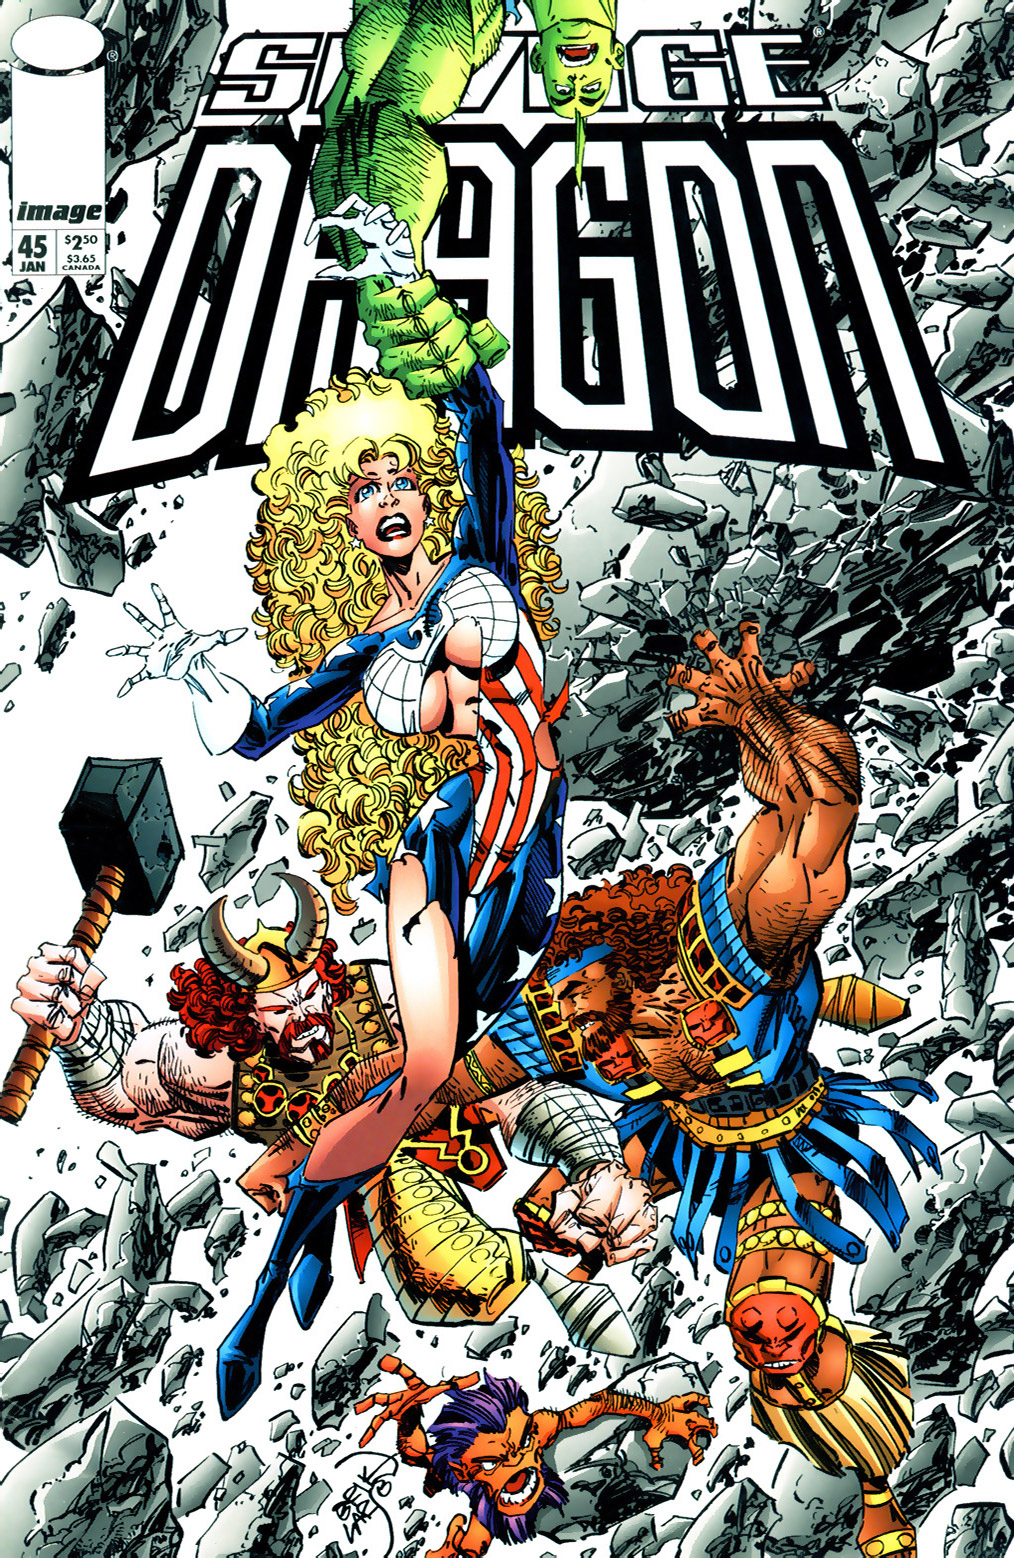 Cover Savage Dragon Vol.2 #45